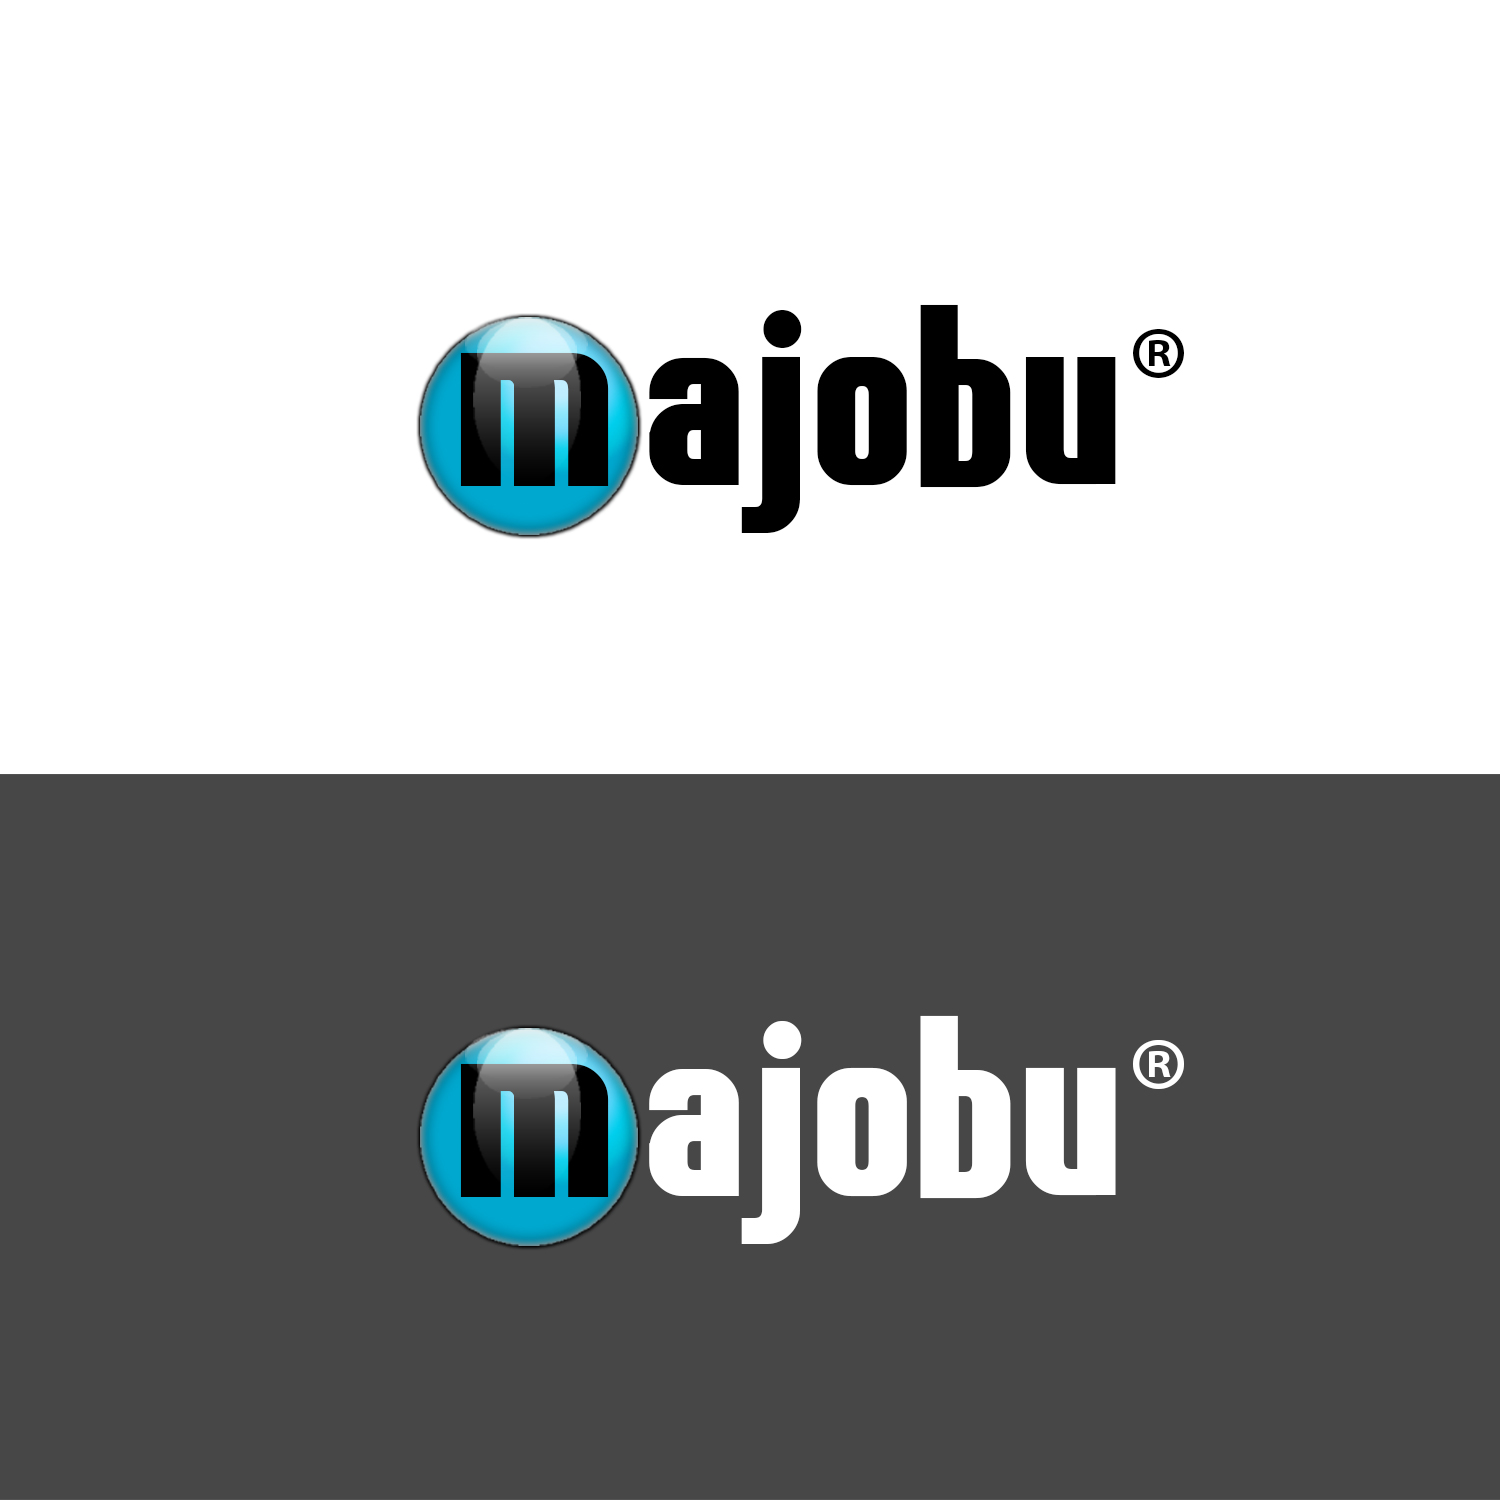 Logo Design by Kivi Marc Sarmiento - Entry No. 20 in the Logo Design Contest Inspiring Logo Design for Majobu.